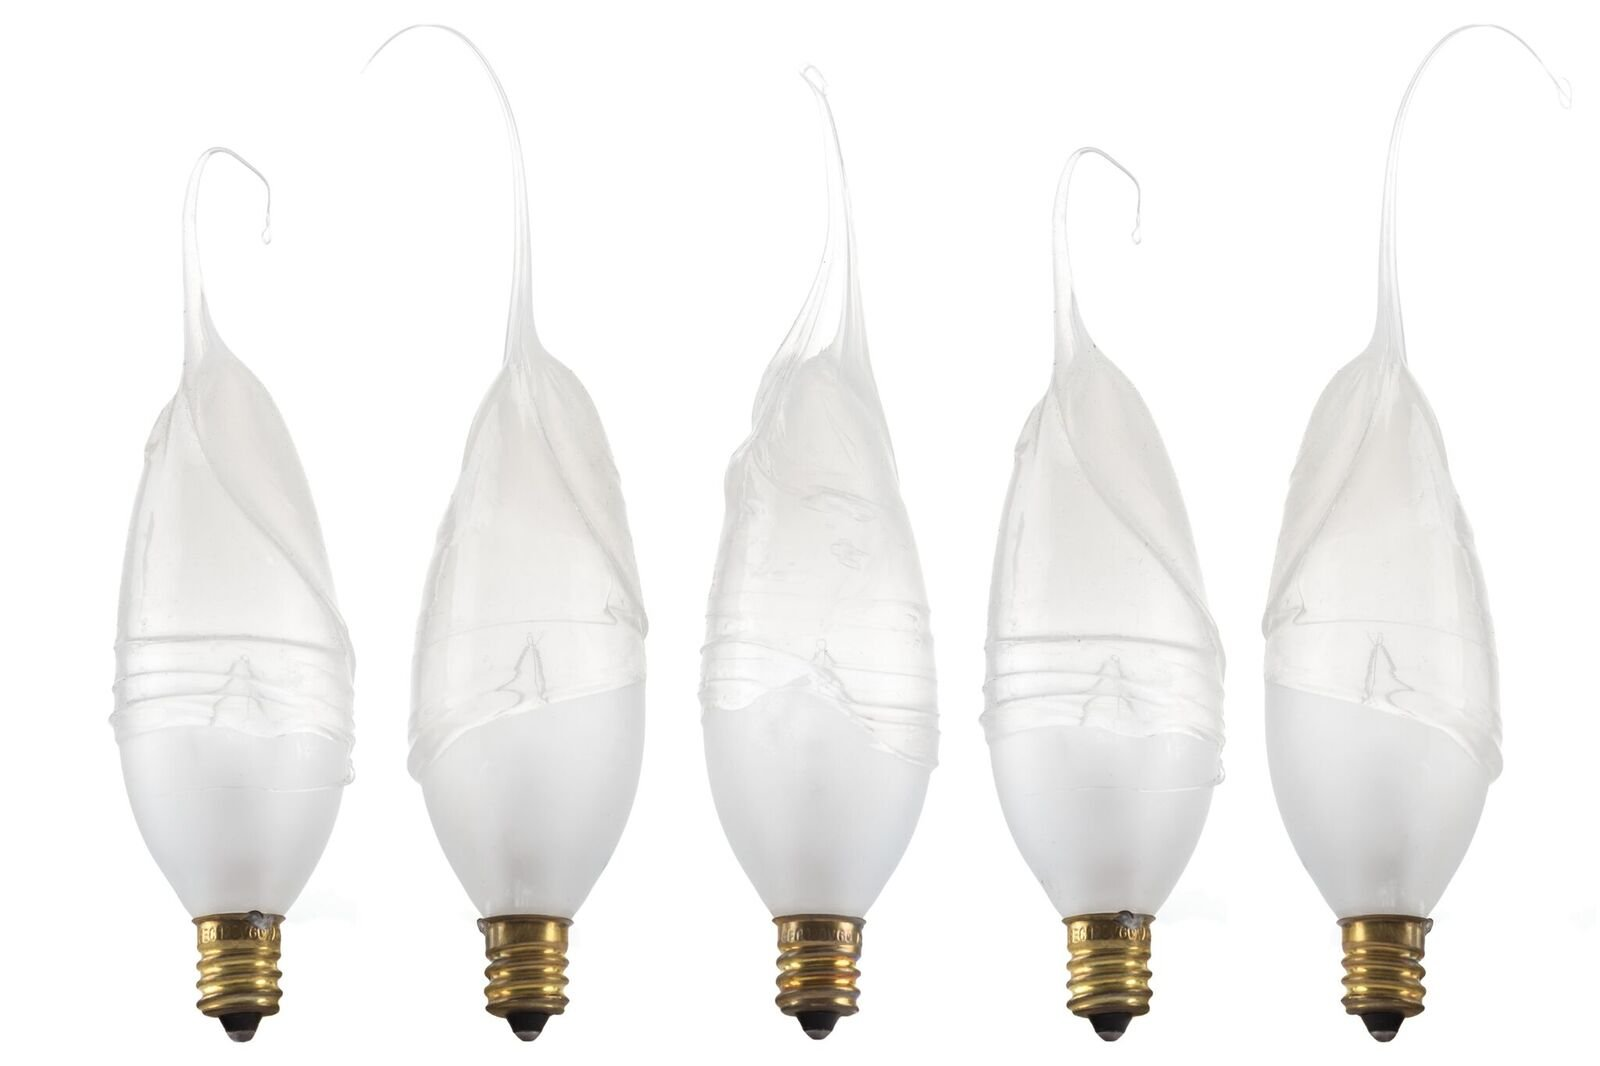 Wish Designs USA Silicone Dipped Hand Dipped Light Bulb, Frosted, 25 watt, single bulb quantity, 25w1pk by Wish Designs USA